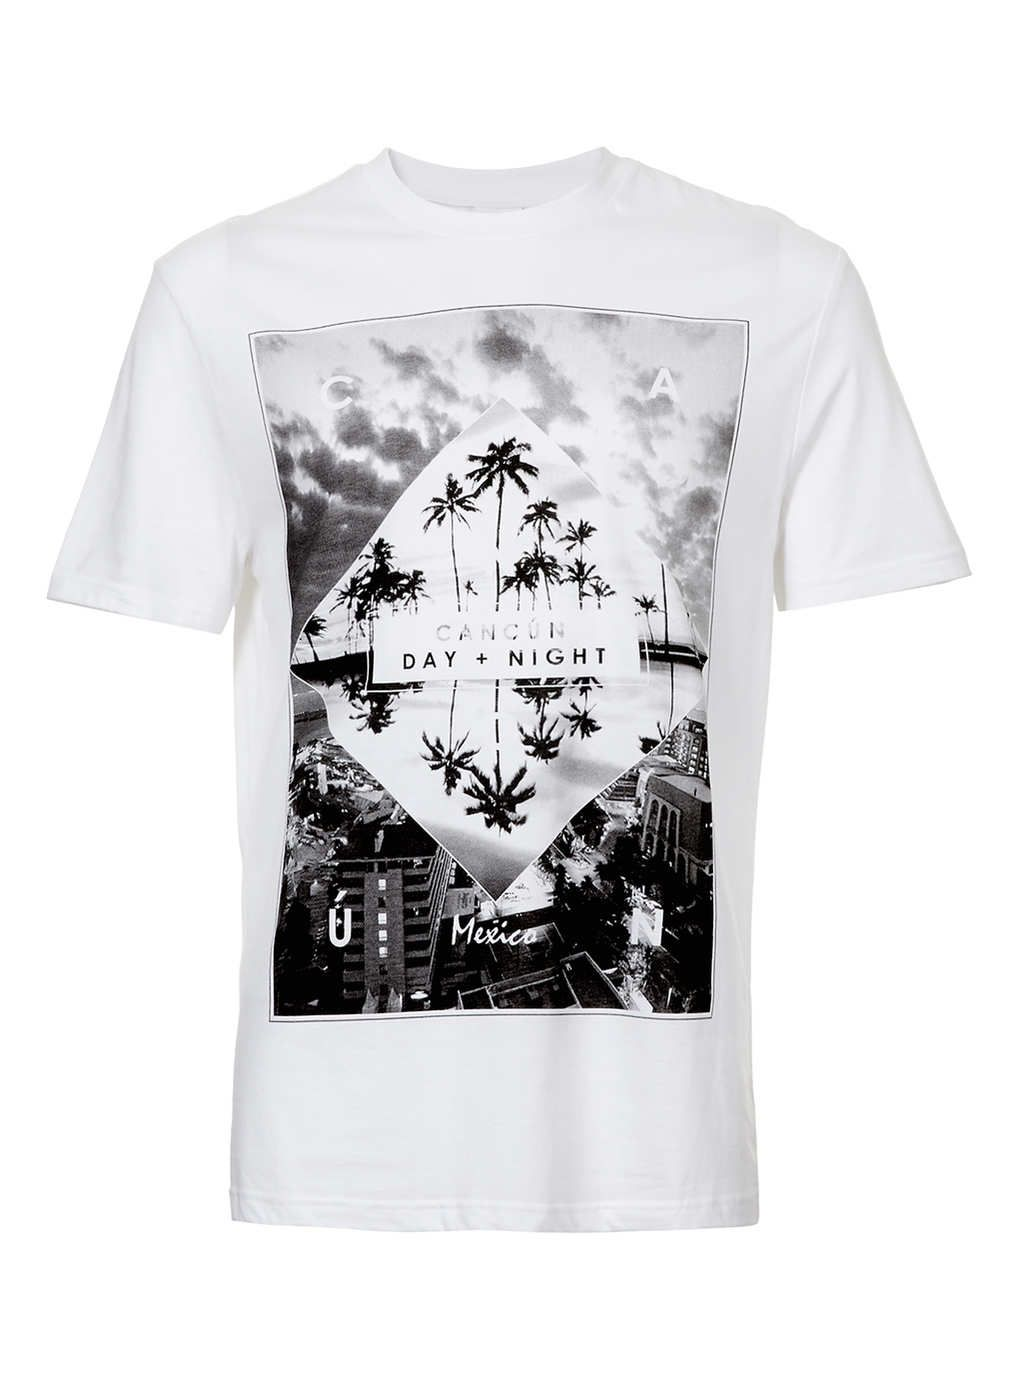 White Cancun Print T-Shirt - Men's T-shirts & Tanks - Clothing ...